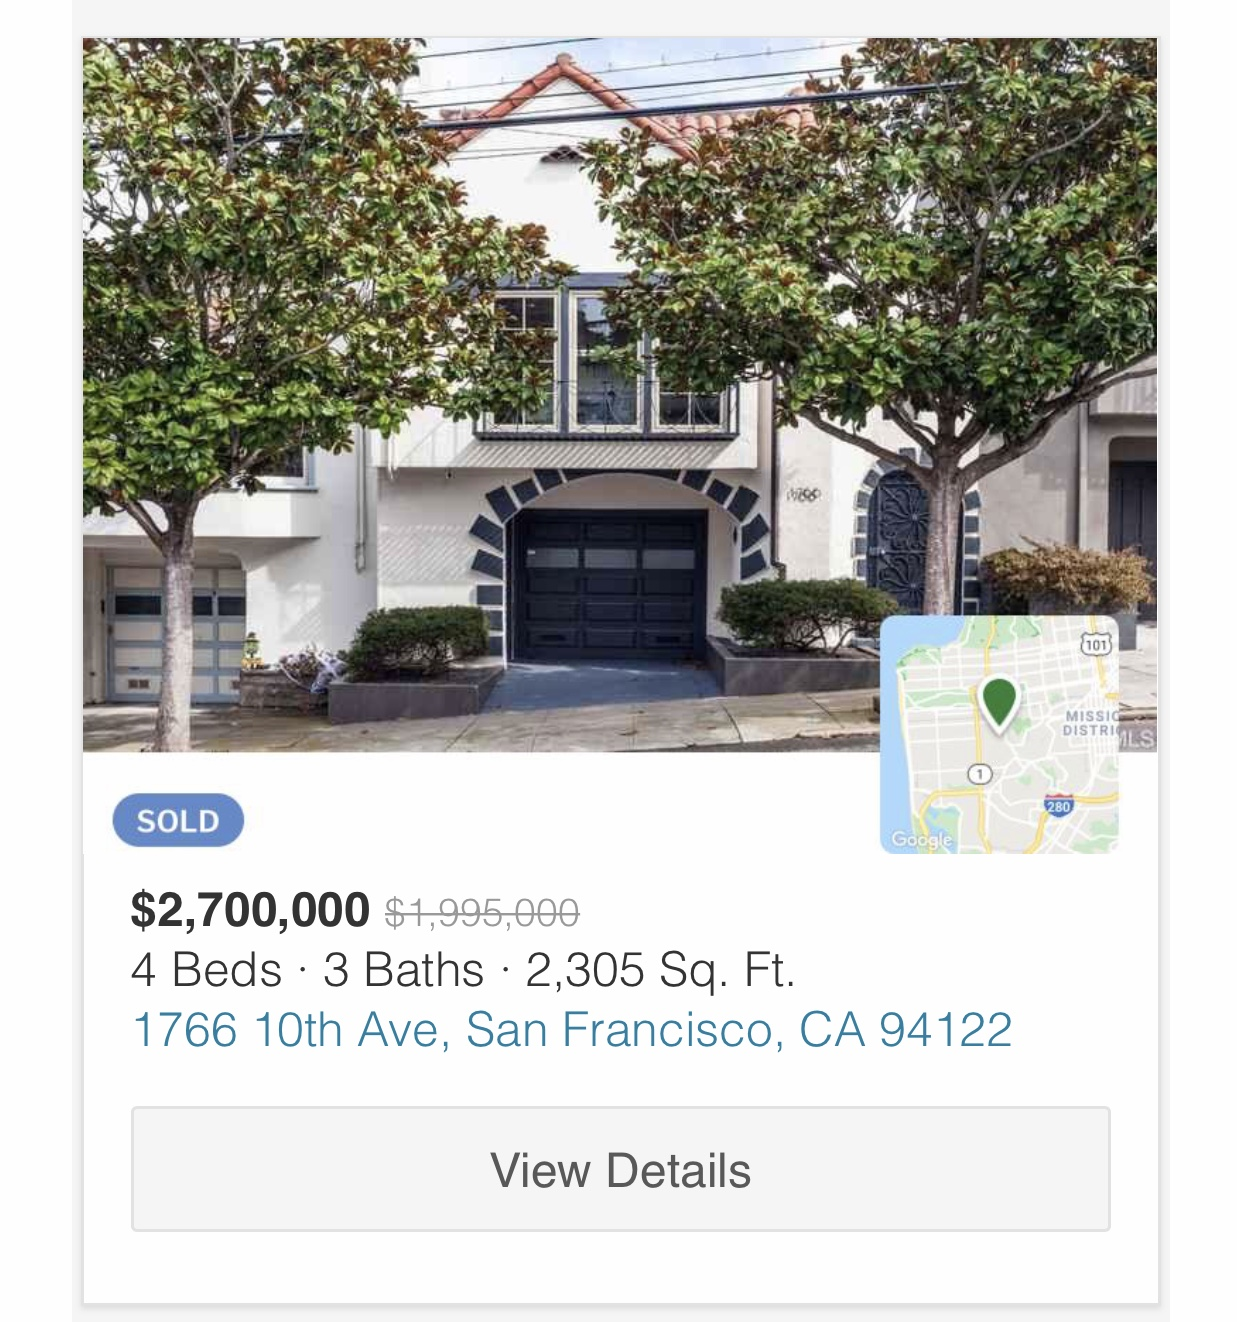 November 2020 property sale in San Francisco